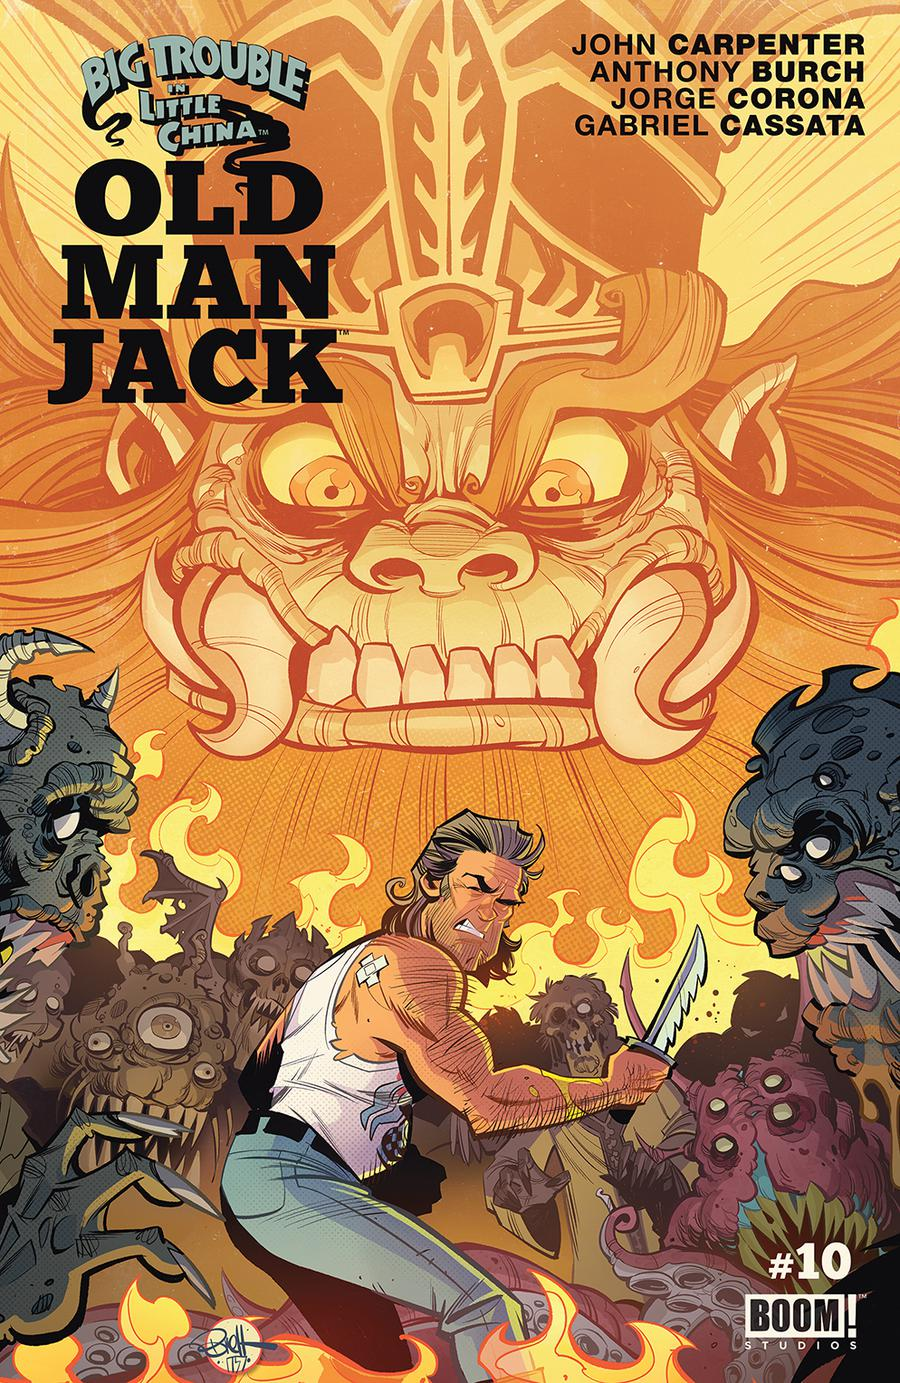 Big Trouble In Little China Old Man Jack #10 Cover A Regular Brett Parson Cover